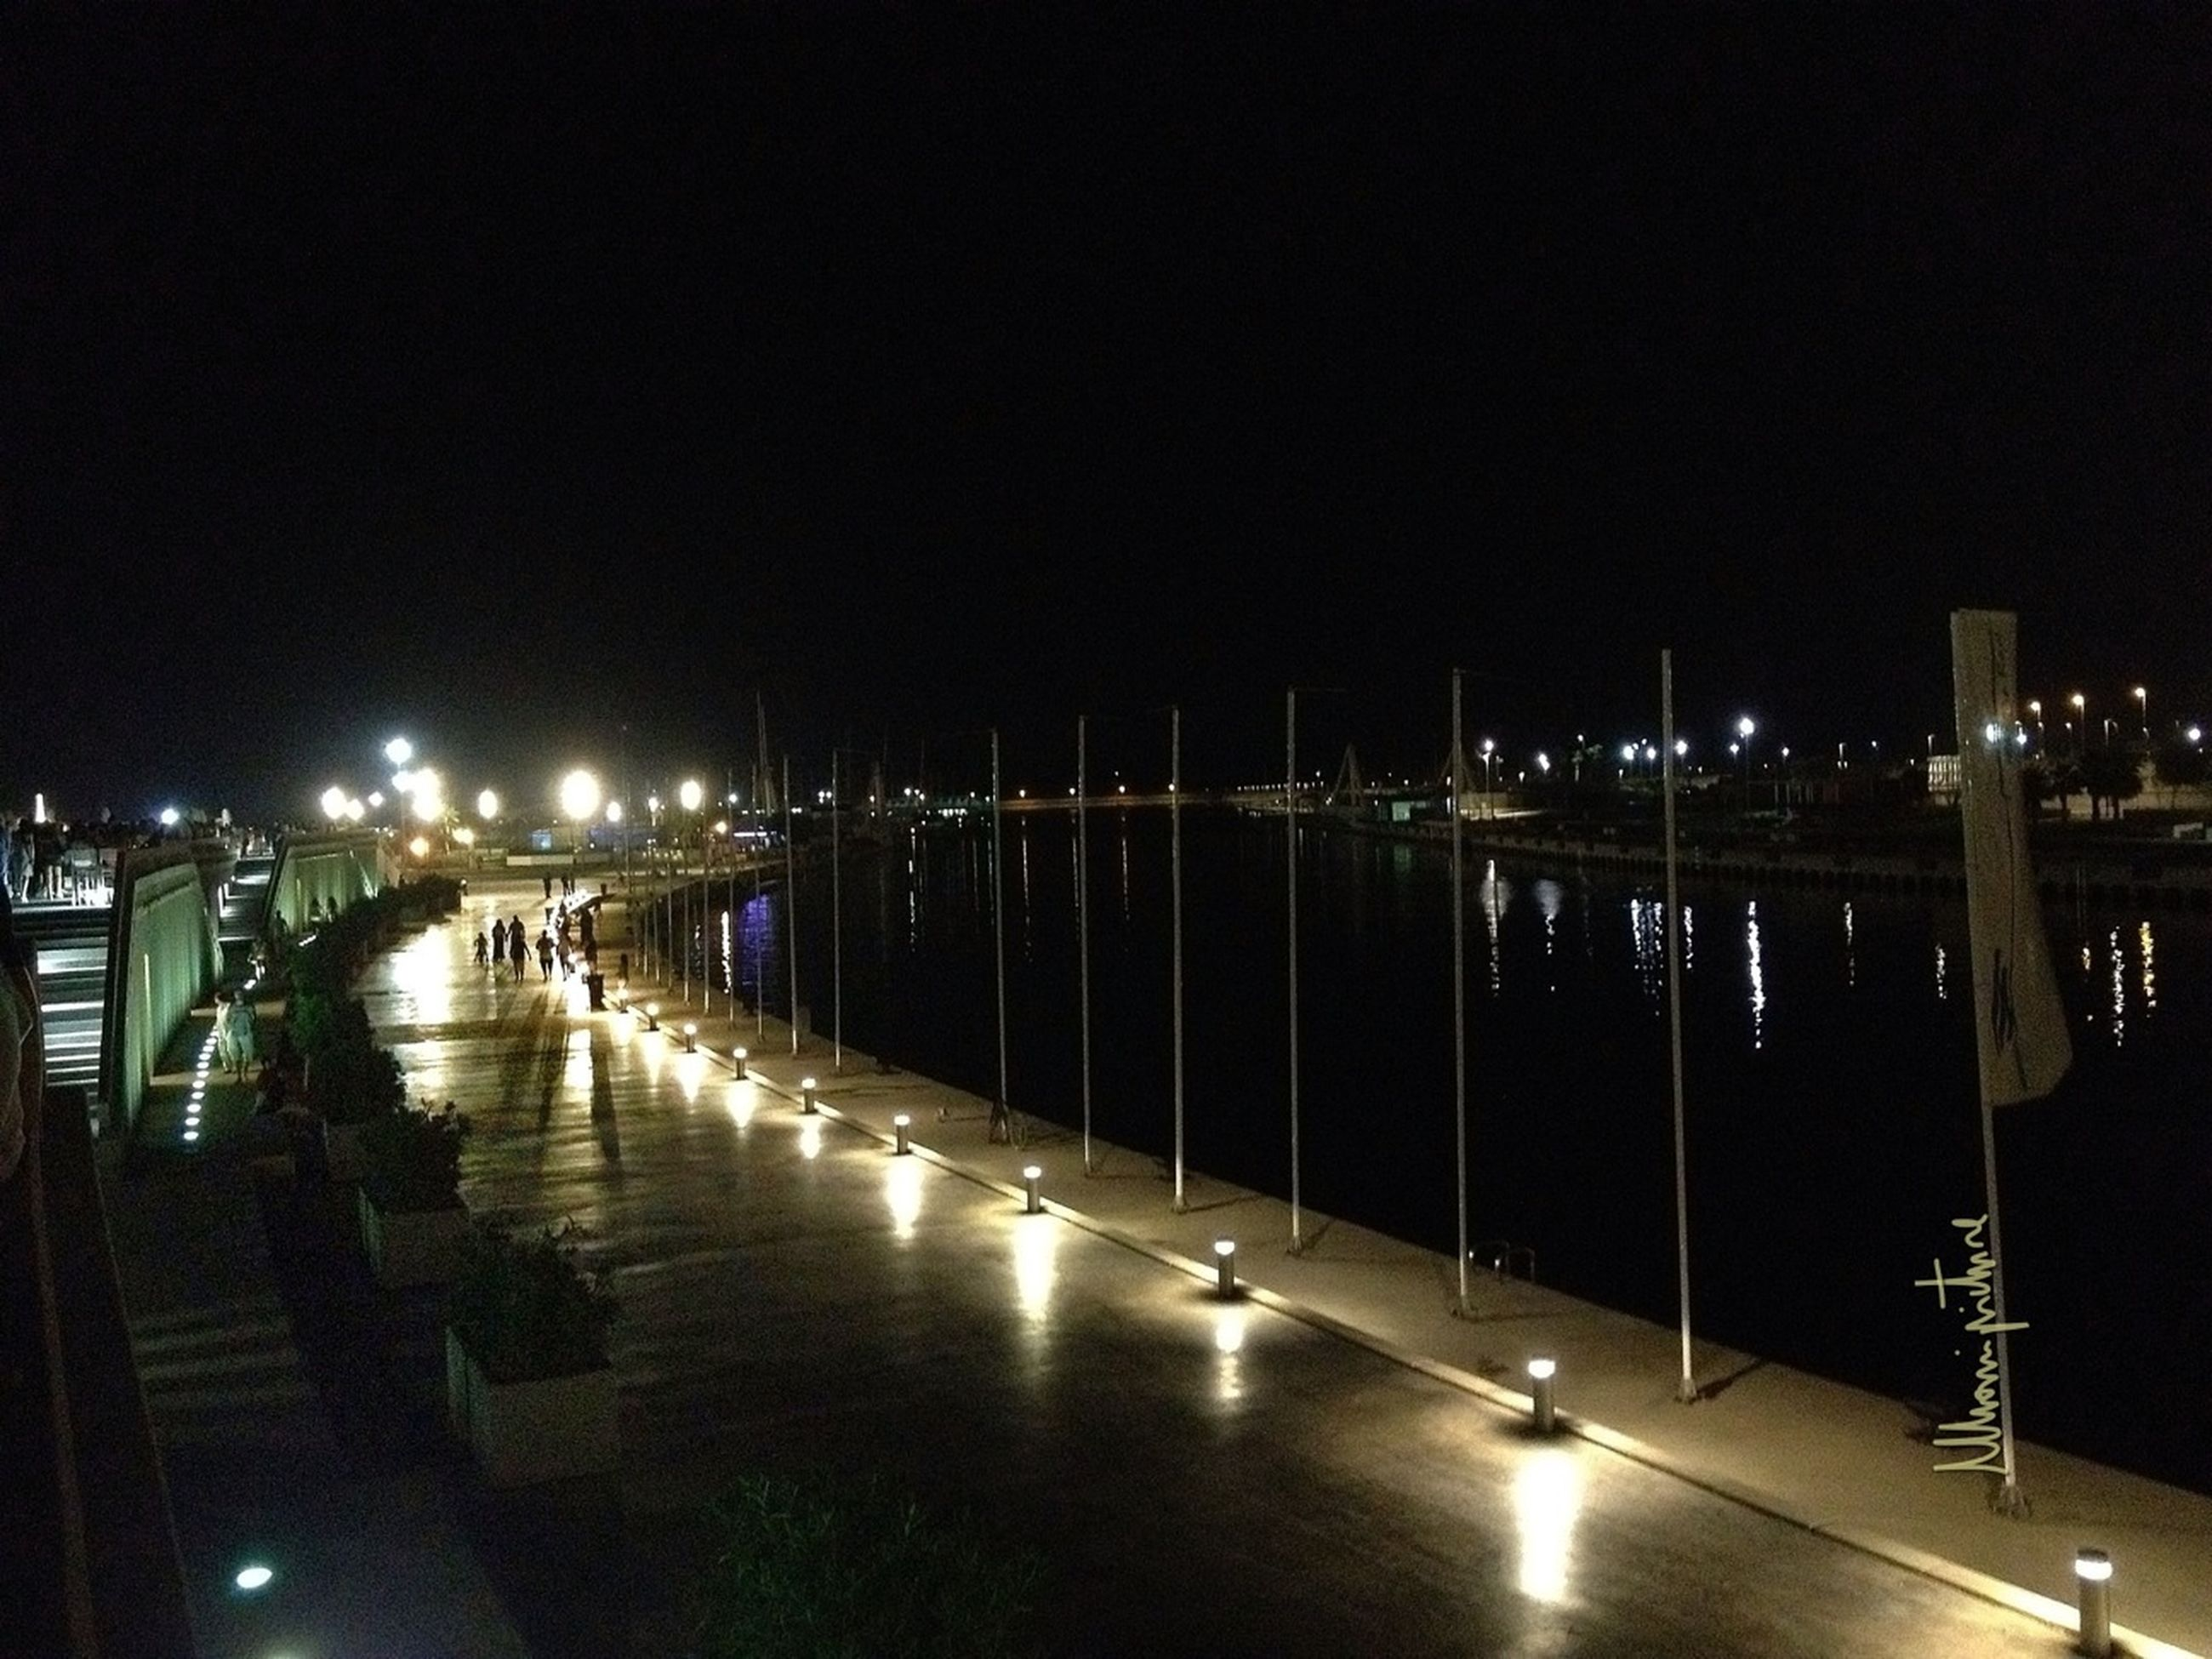 night, illuminated, water, reflection, built structure, architecture, river, lighting equipment, city, transportation, street light, copy space, clear sky, waterfront, sea, building exterior, bridge - man made structure, nautical vessel, sky, dark